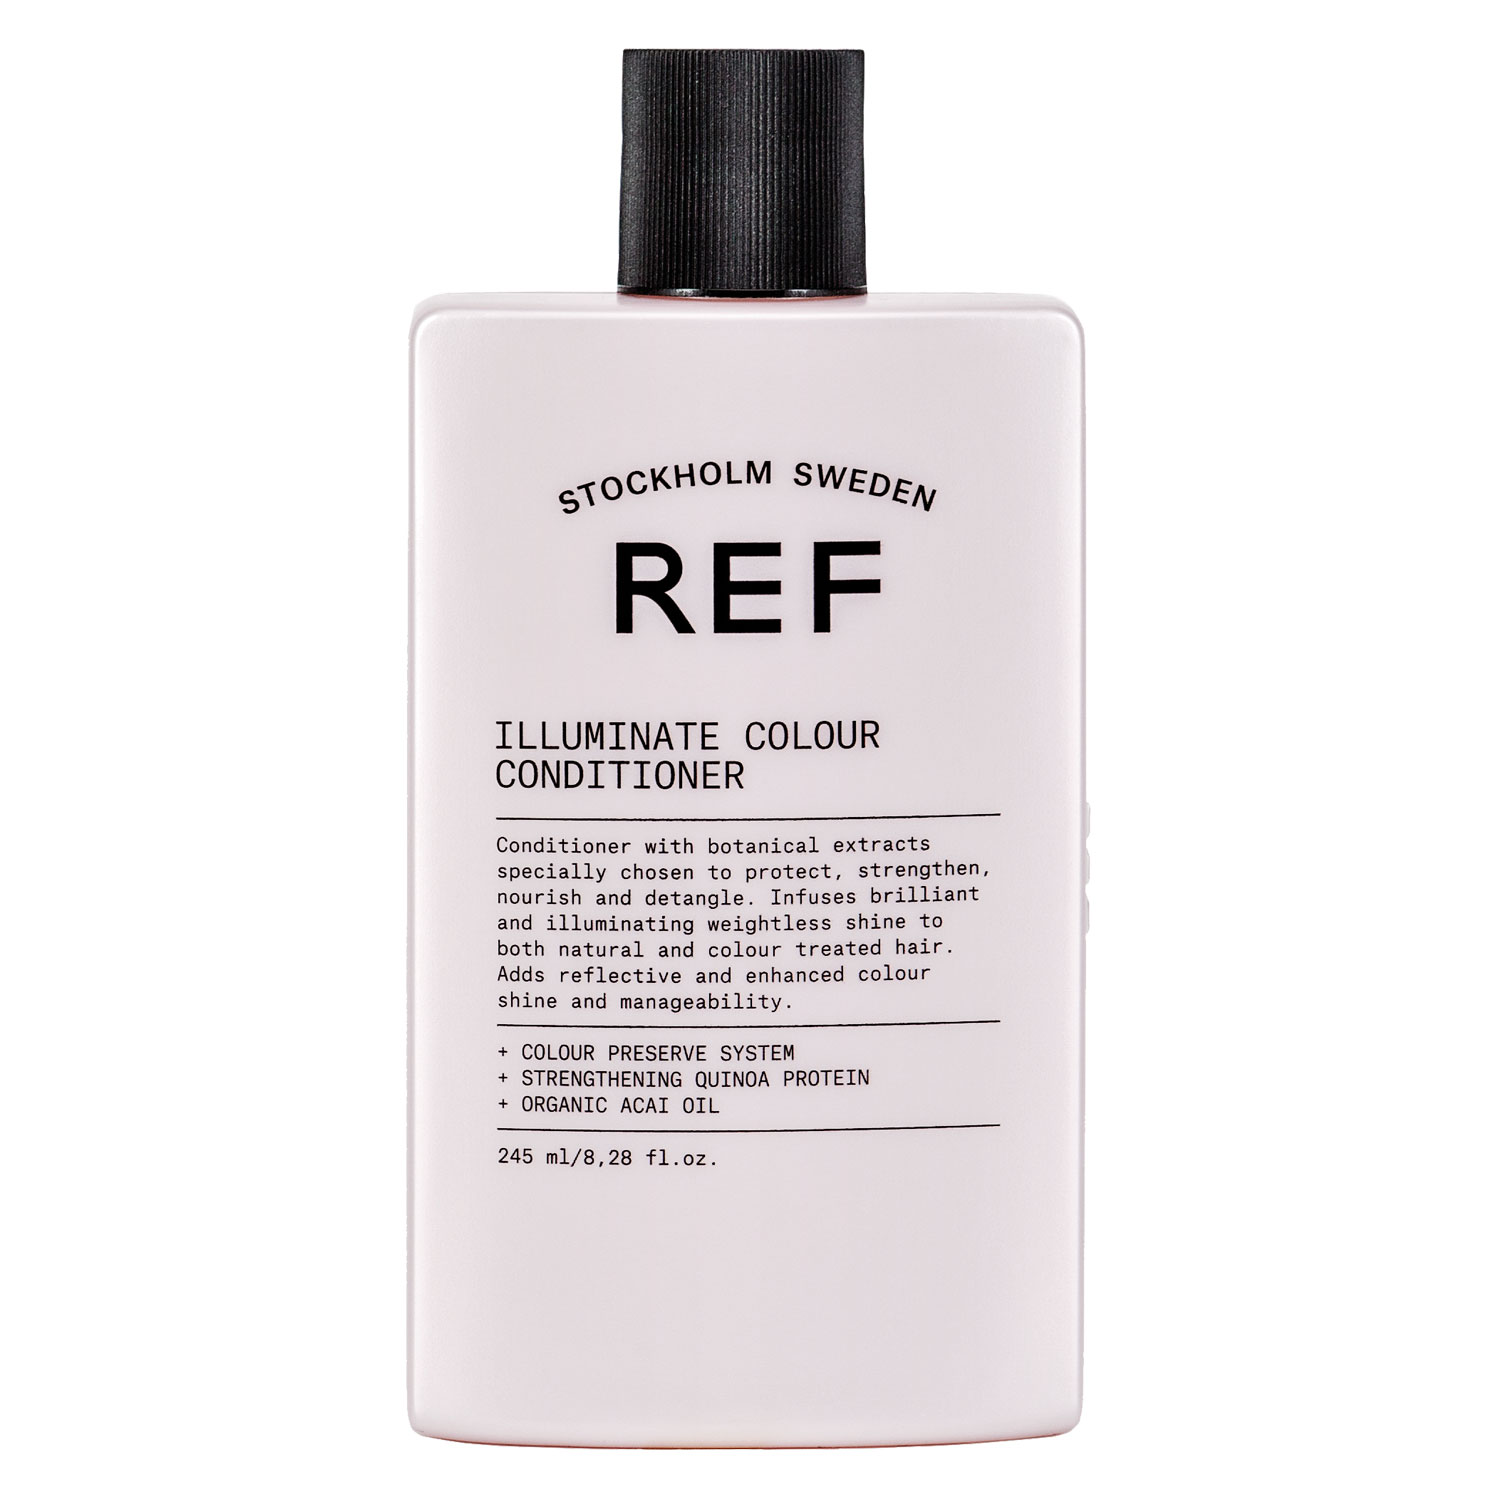 REF Treatment - Illuminate Colour Conditioner - 245ml